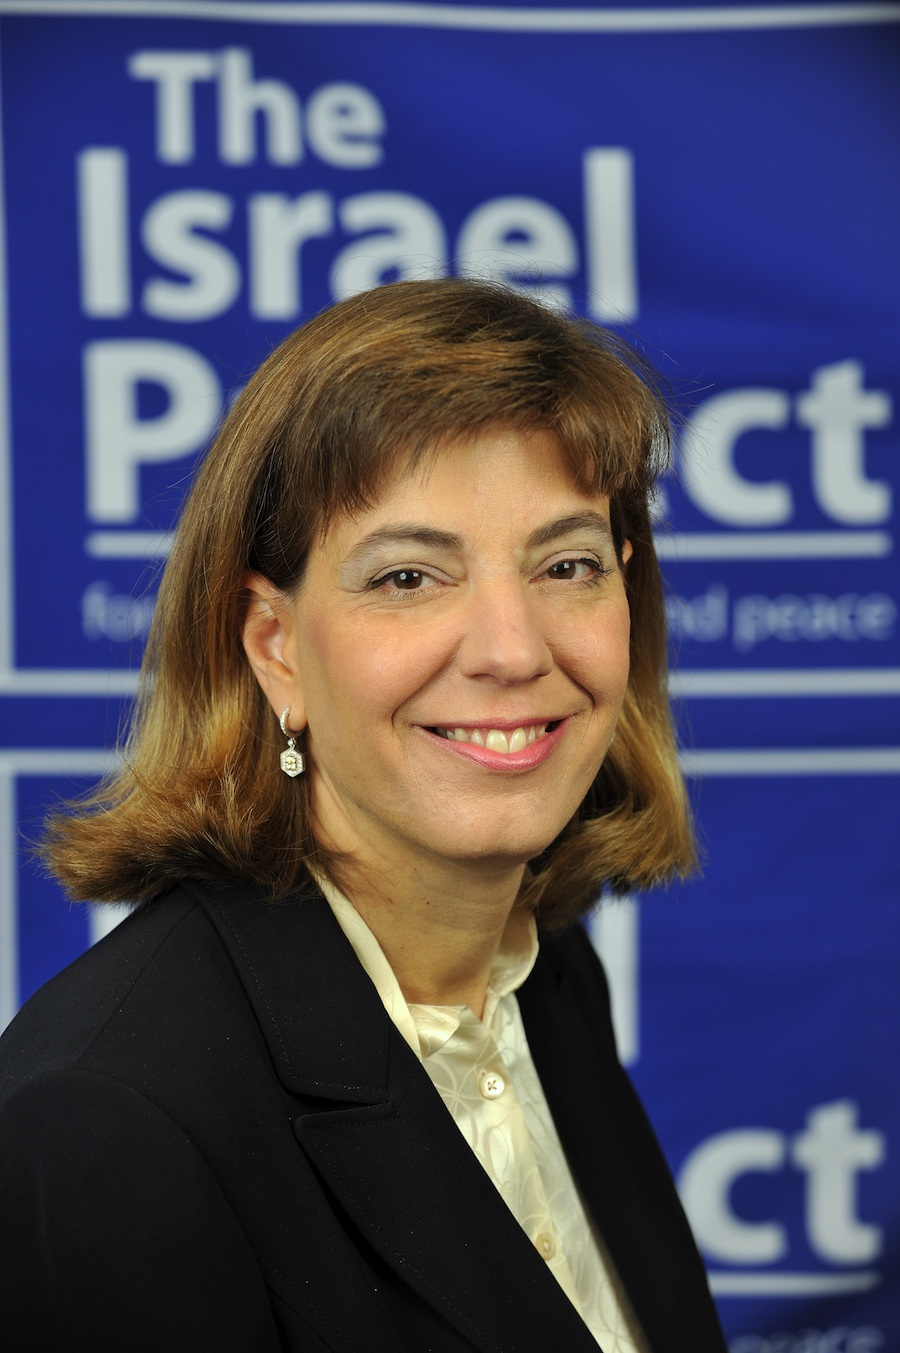 Click photo to download. Caption: Jennifer Laszlo Mizrahi. Credit: The Israel Project.